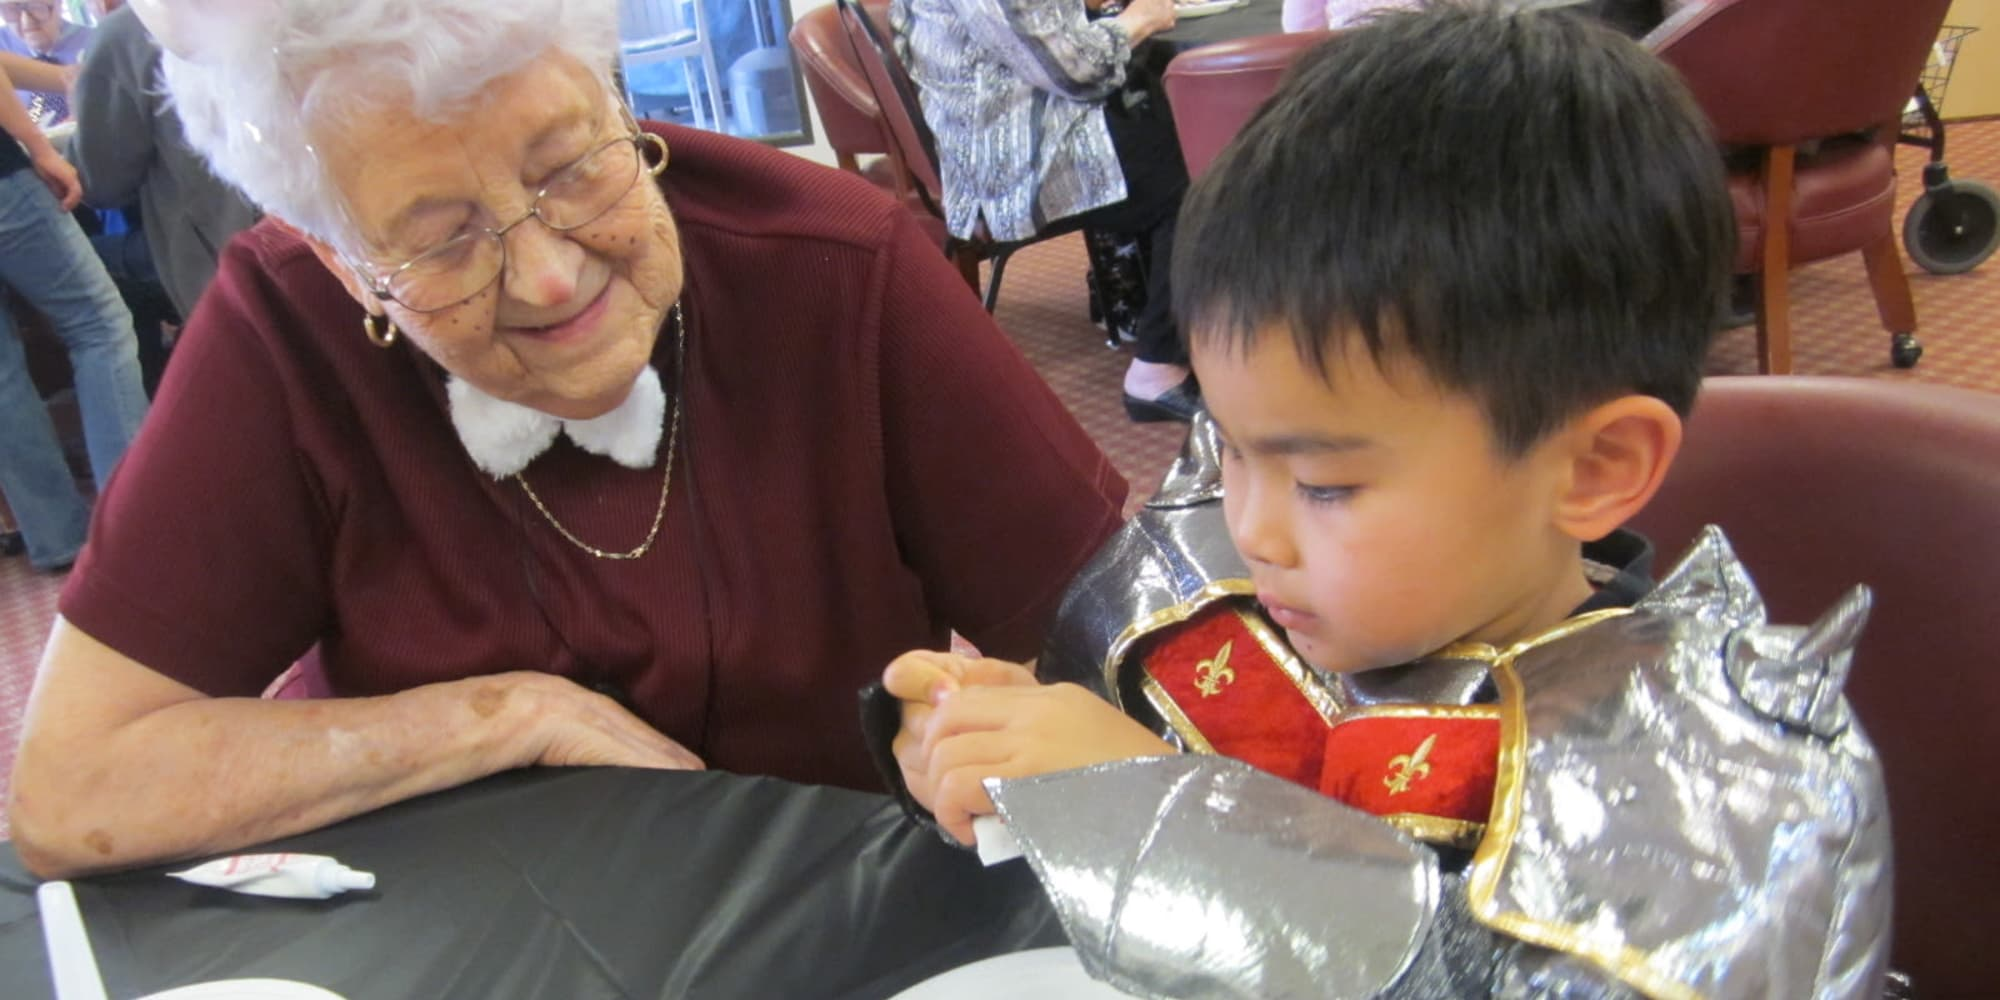 A resident decorating cookies with a child at Victoria Park Personal Care Home in Regina, Saskatchewan